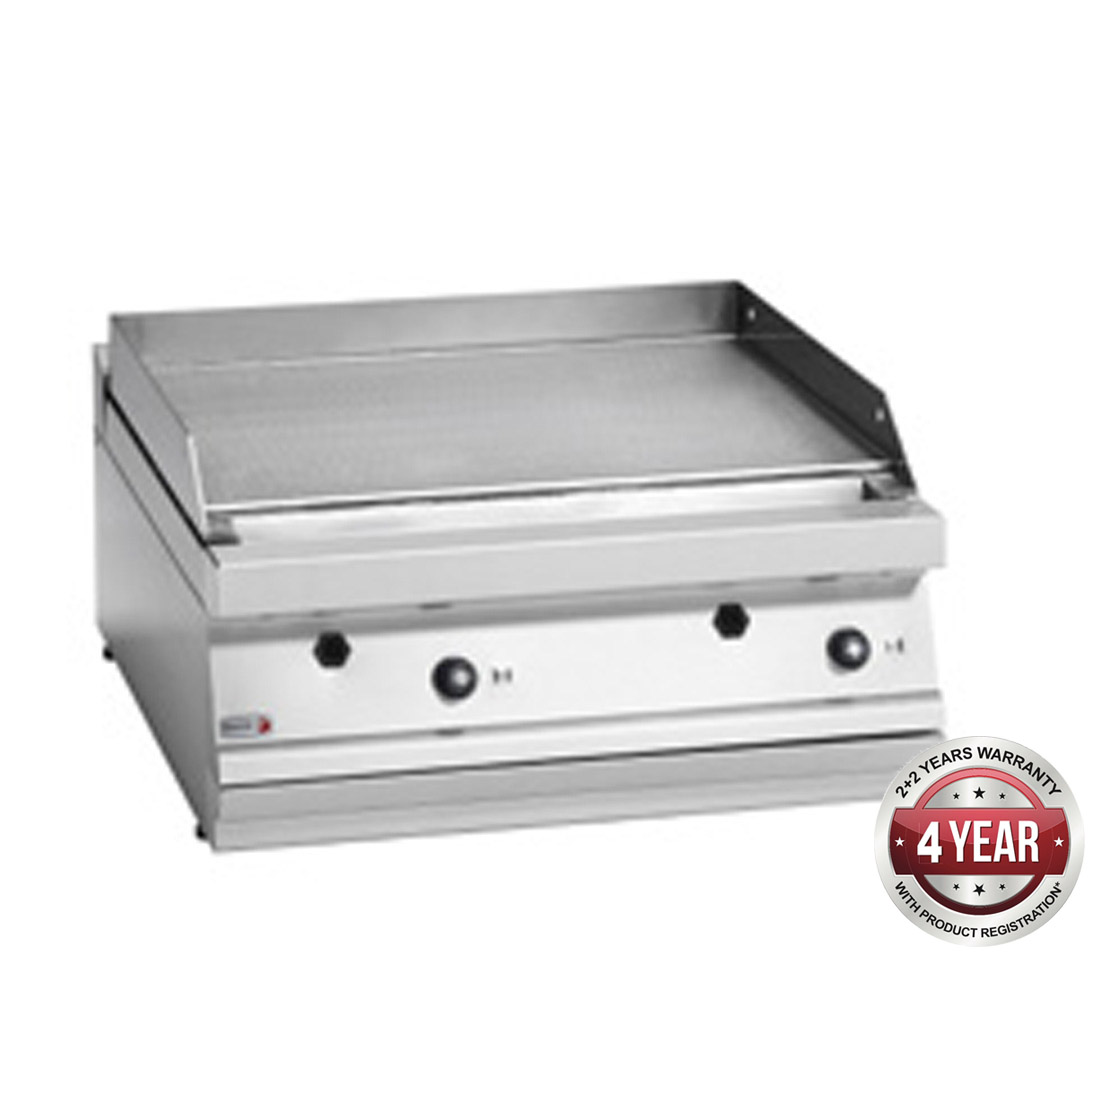 Fagor 700 series natural gas mild steel 2 zone fry top FTG7-10L